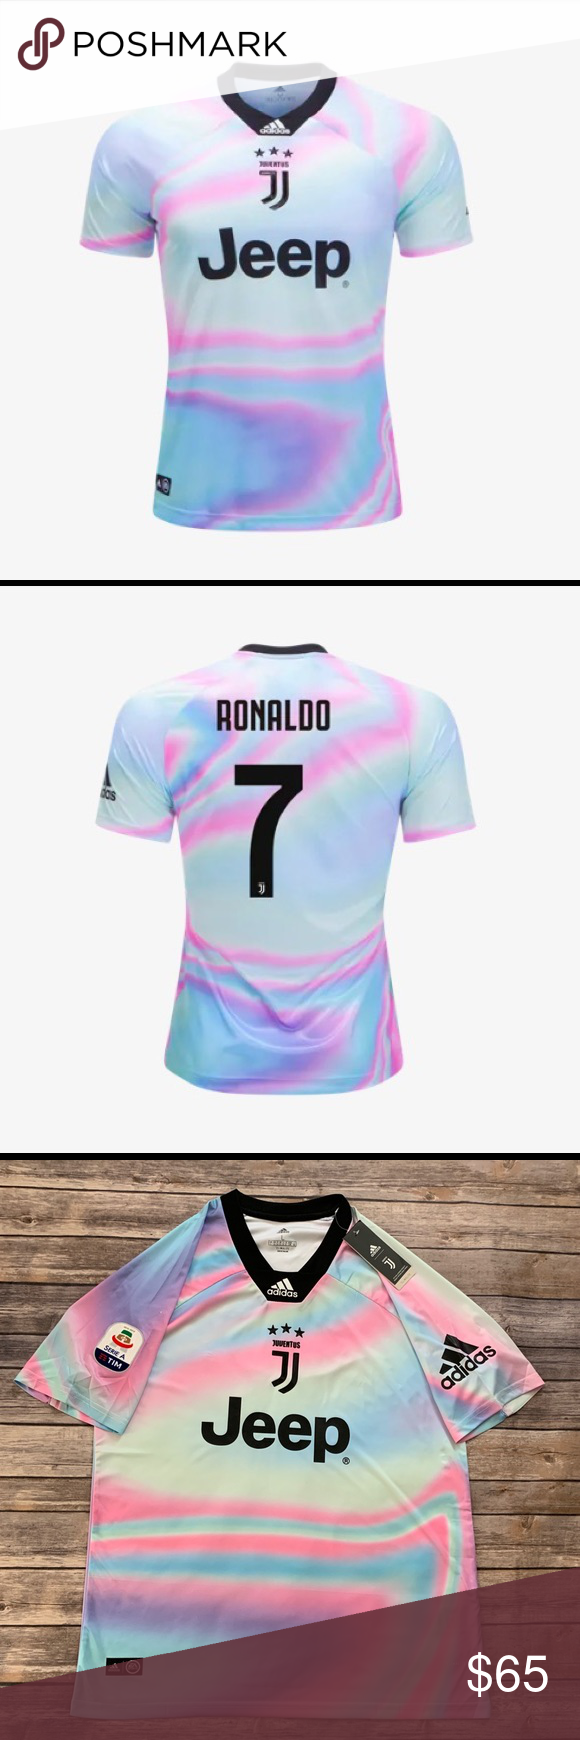 bc99c800b Adidas Ronaldo Juventus EA Sports Jersey 18 19 Adidas Ronaldo Juventus EA  Sports Jersey 18 19. The latest of the limited edition Digital 4th kits  made in ...